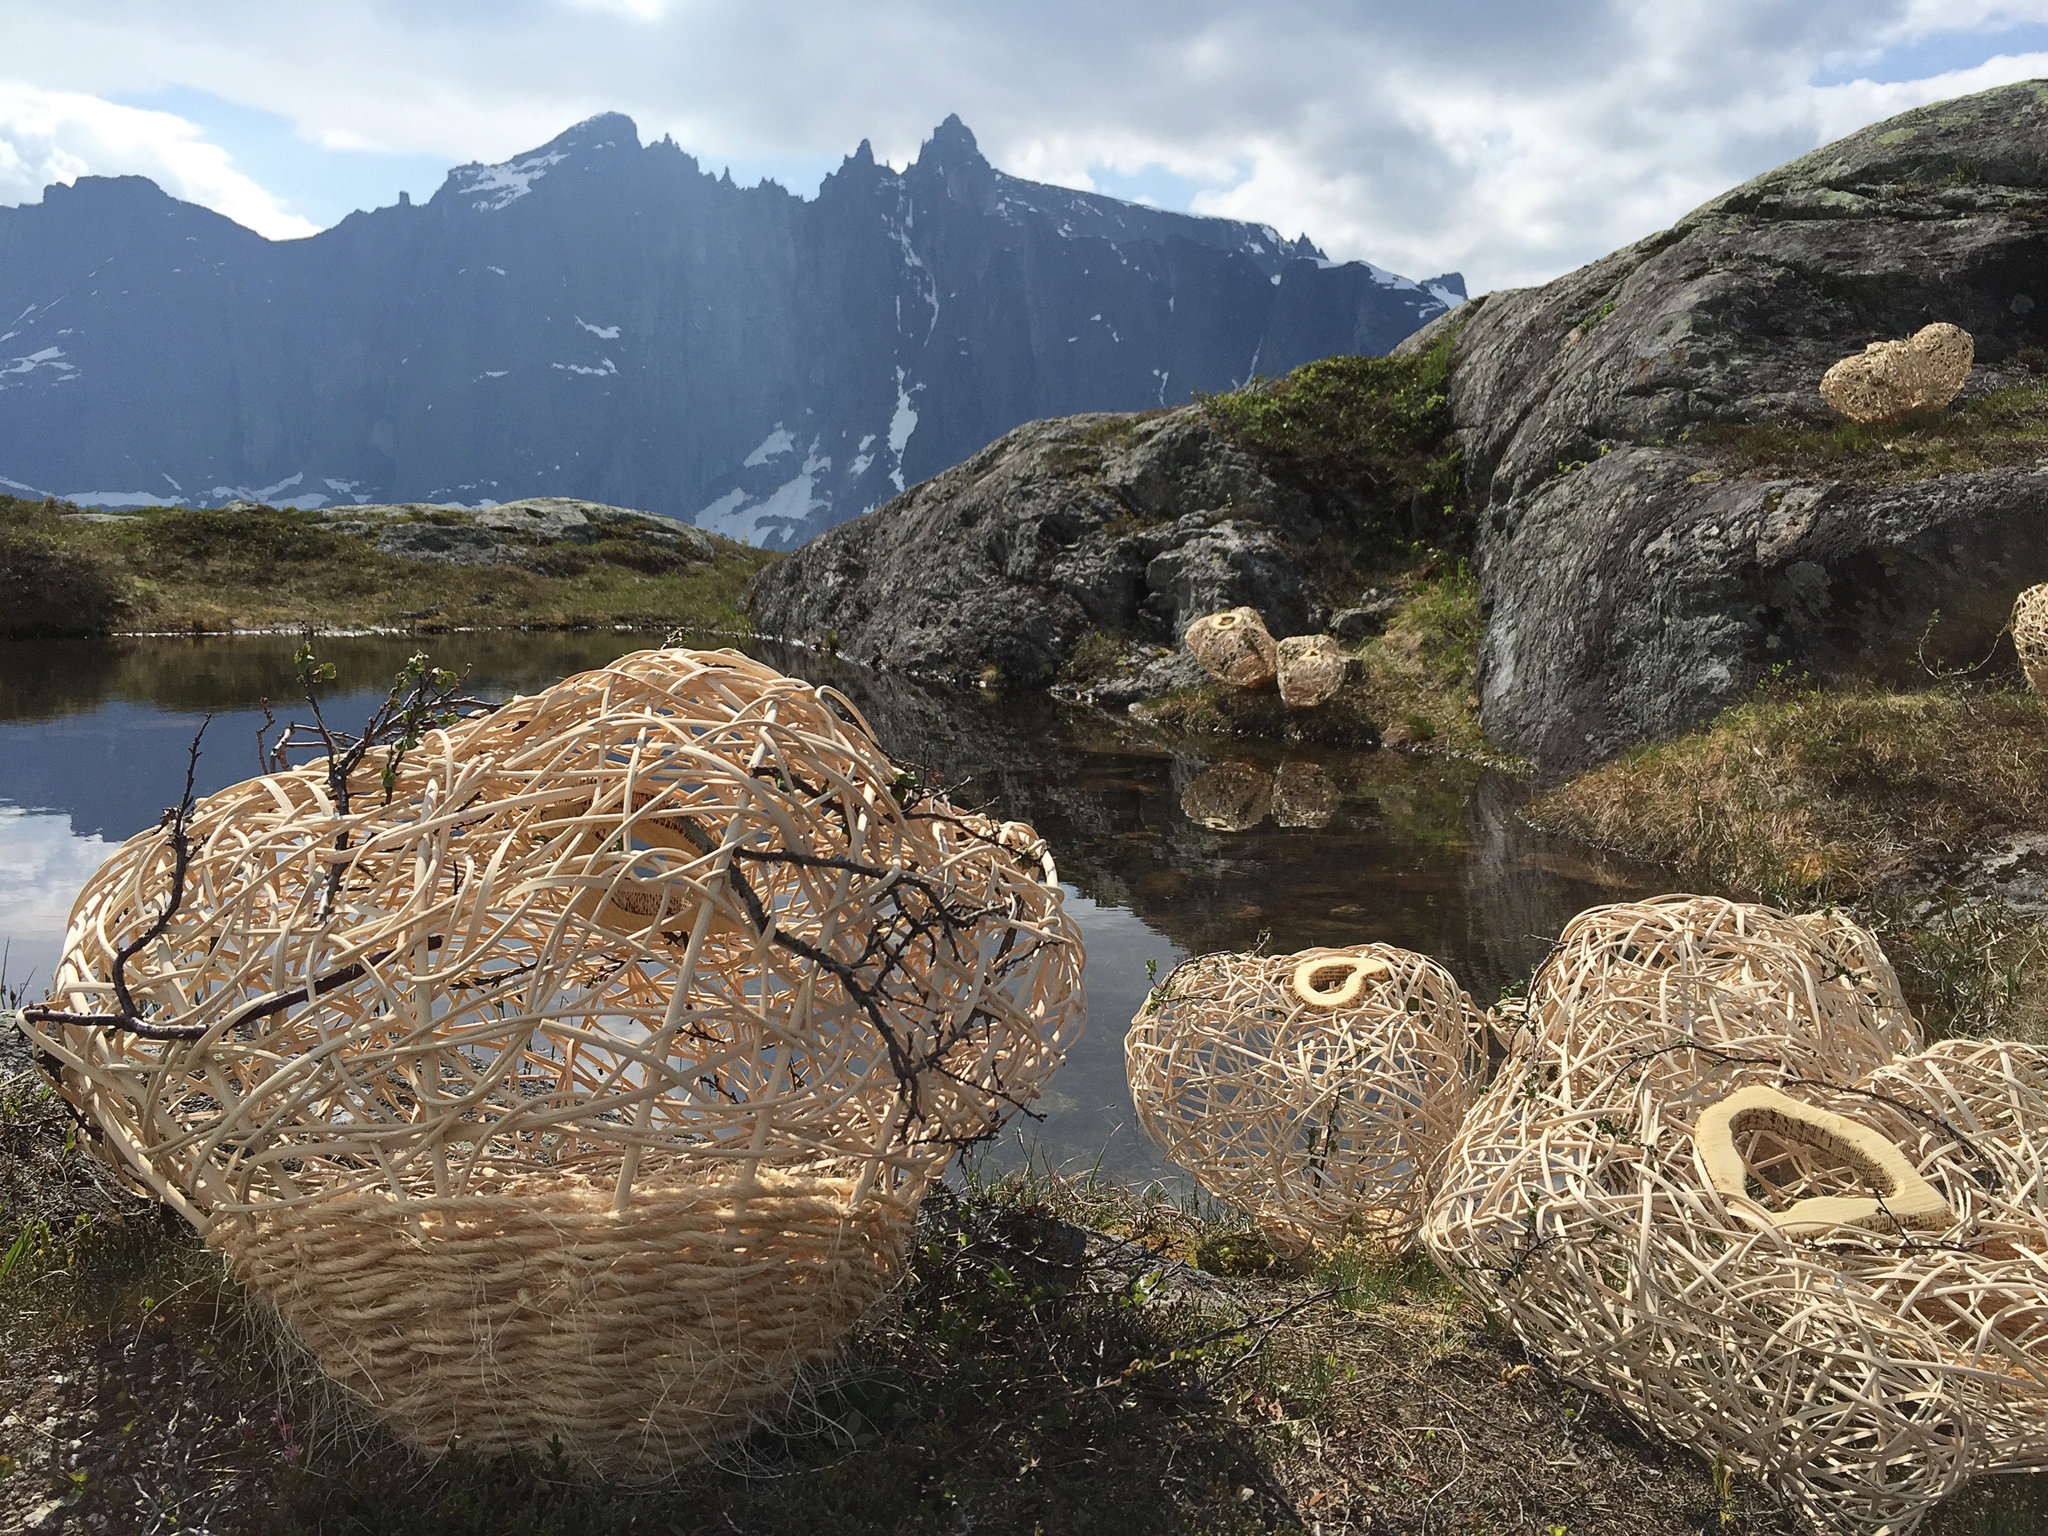 Installation woven of wood and rattan for 'Kunst i Natur* in Åndalsnes, Norway 2015